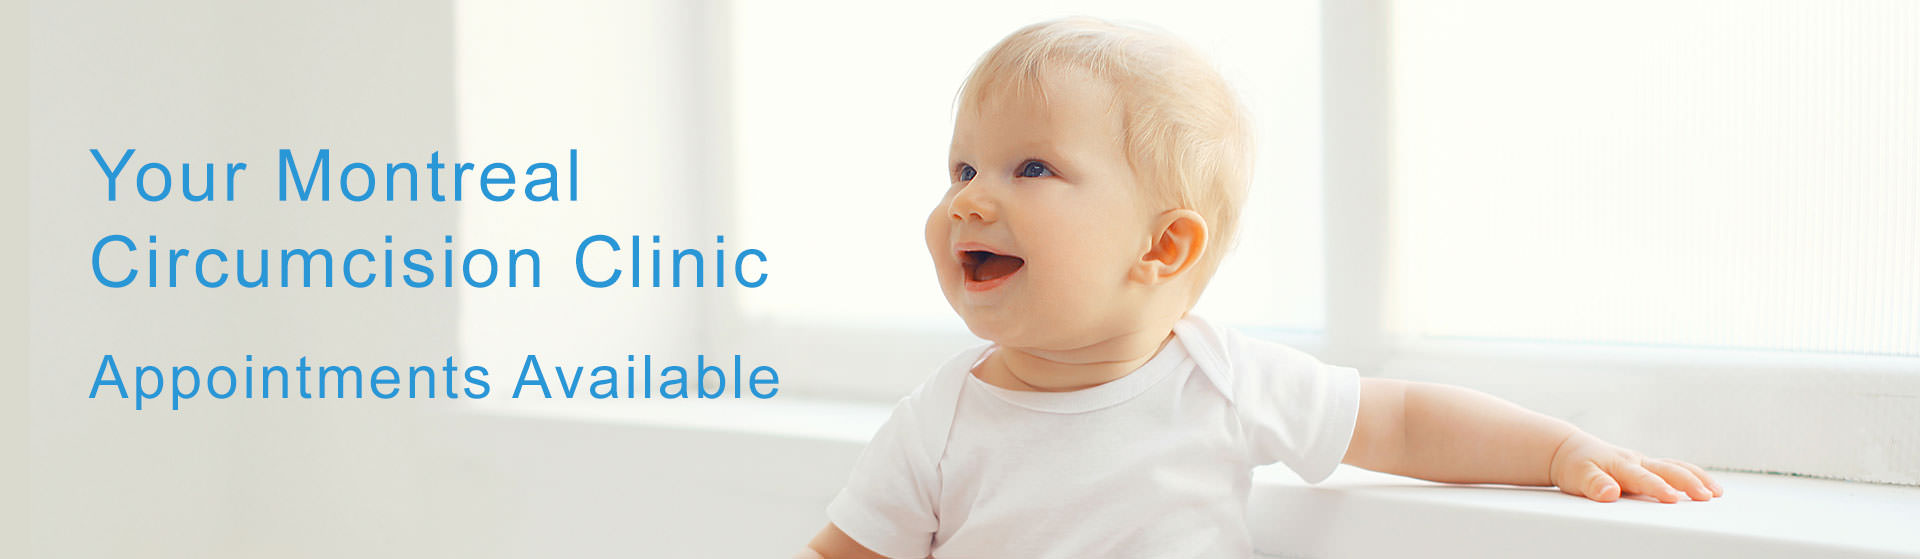 Banner - Mtl Circumcision Clinic - Appointments